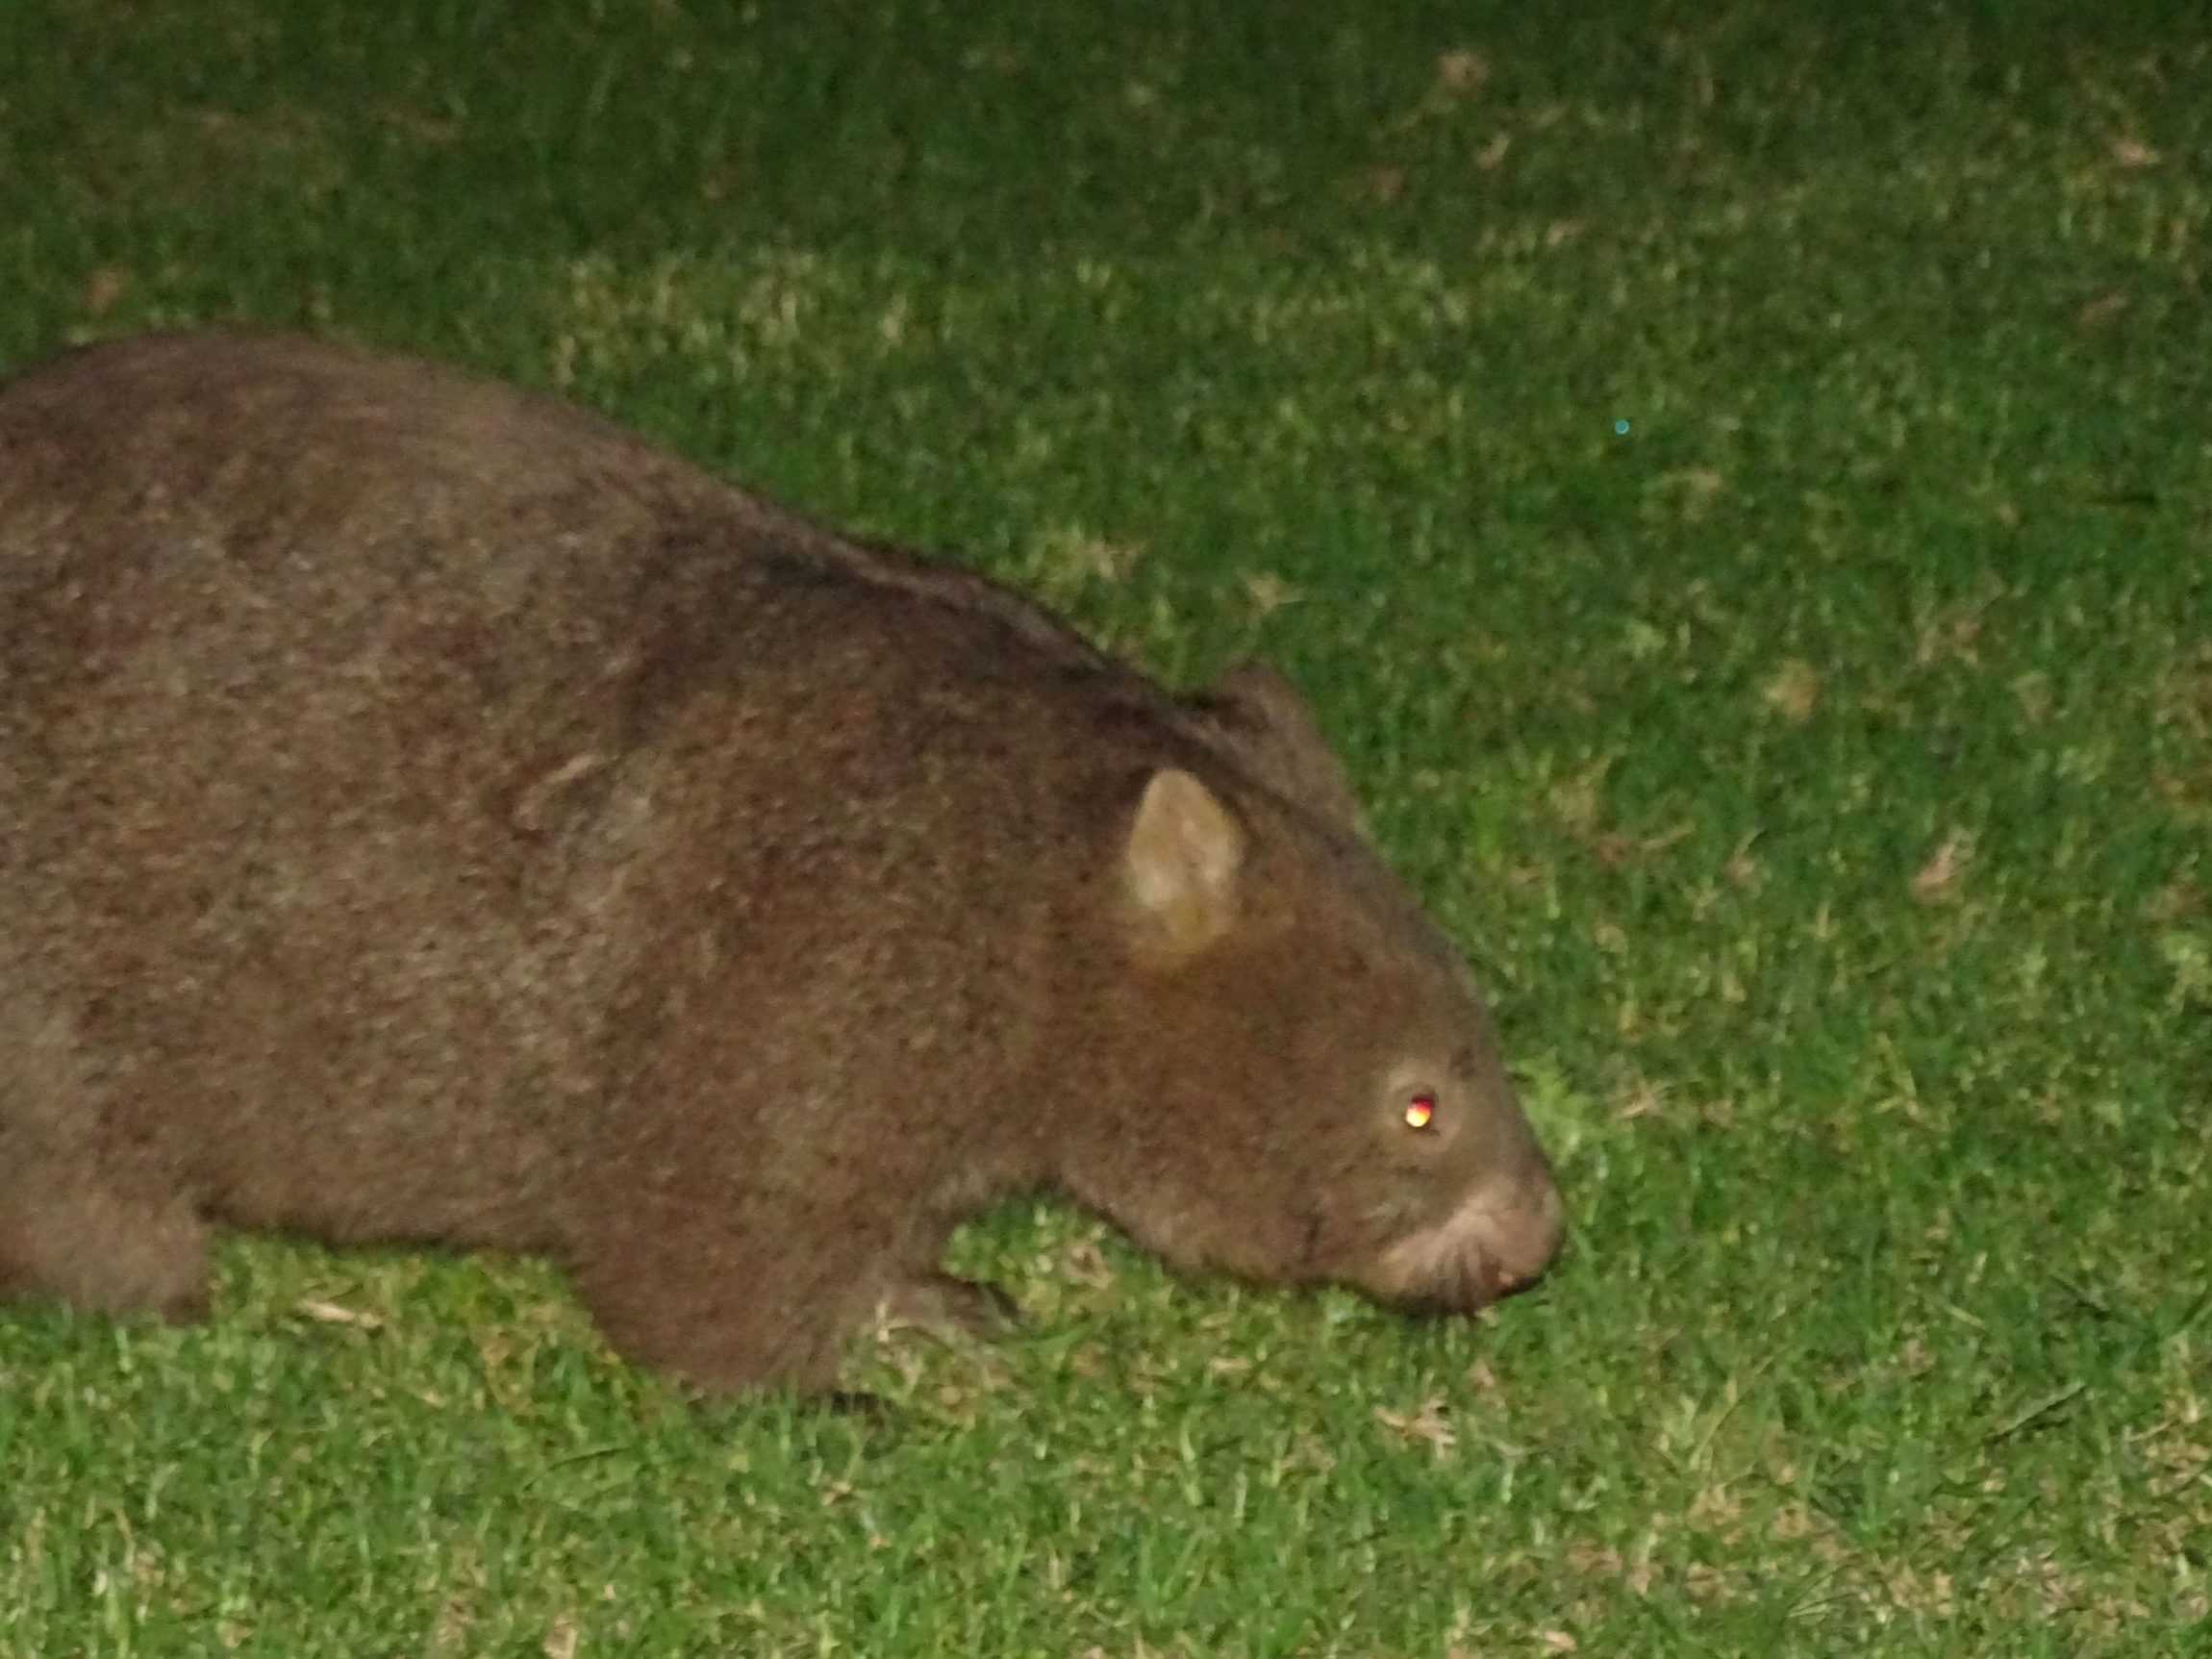 Wombat (This picture is taken with the help of my friend David)